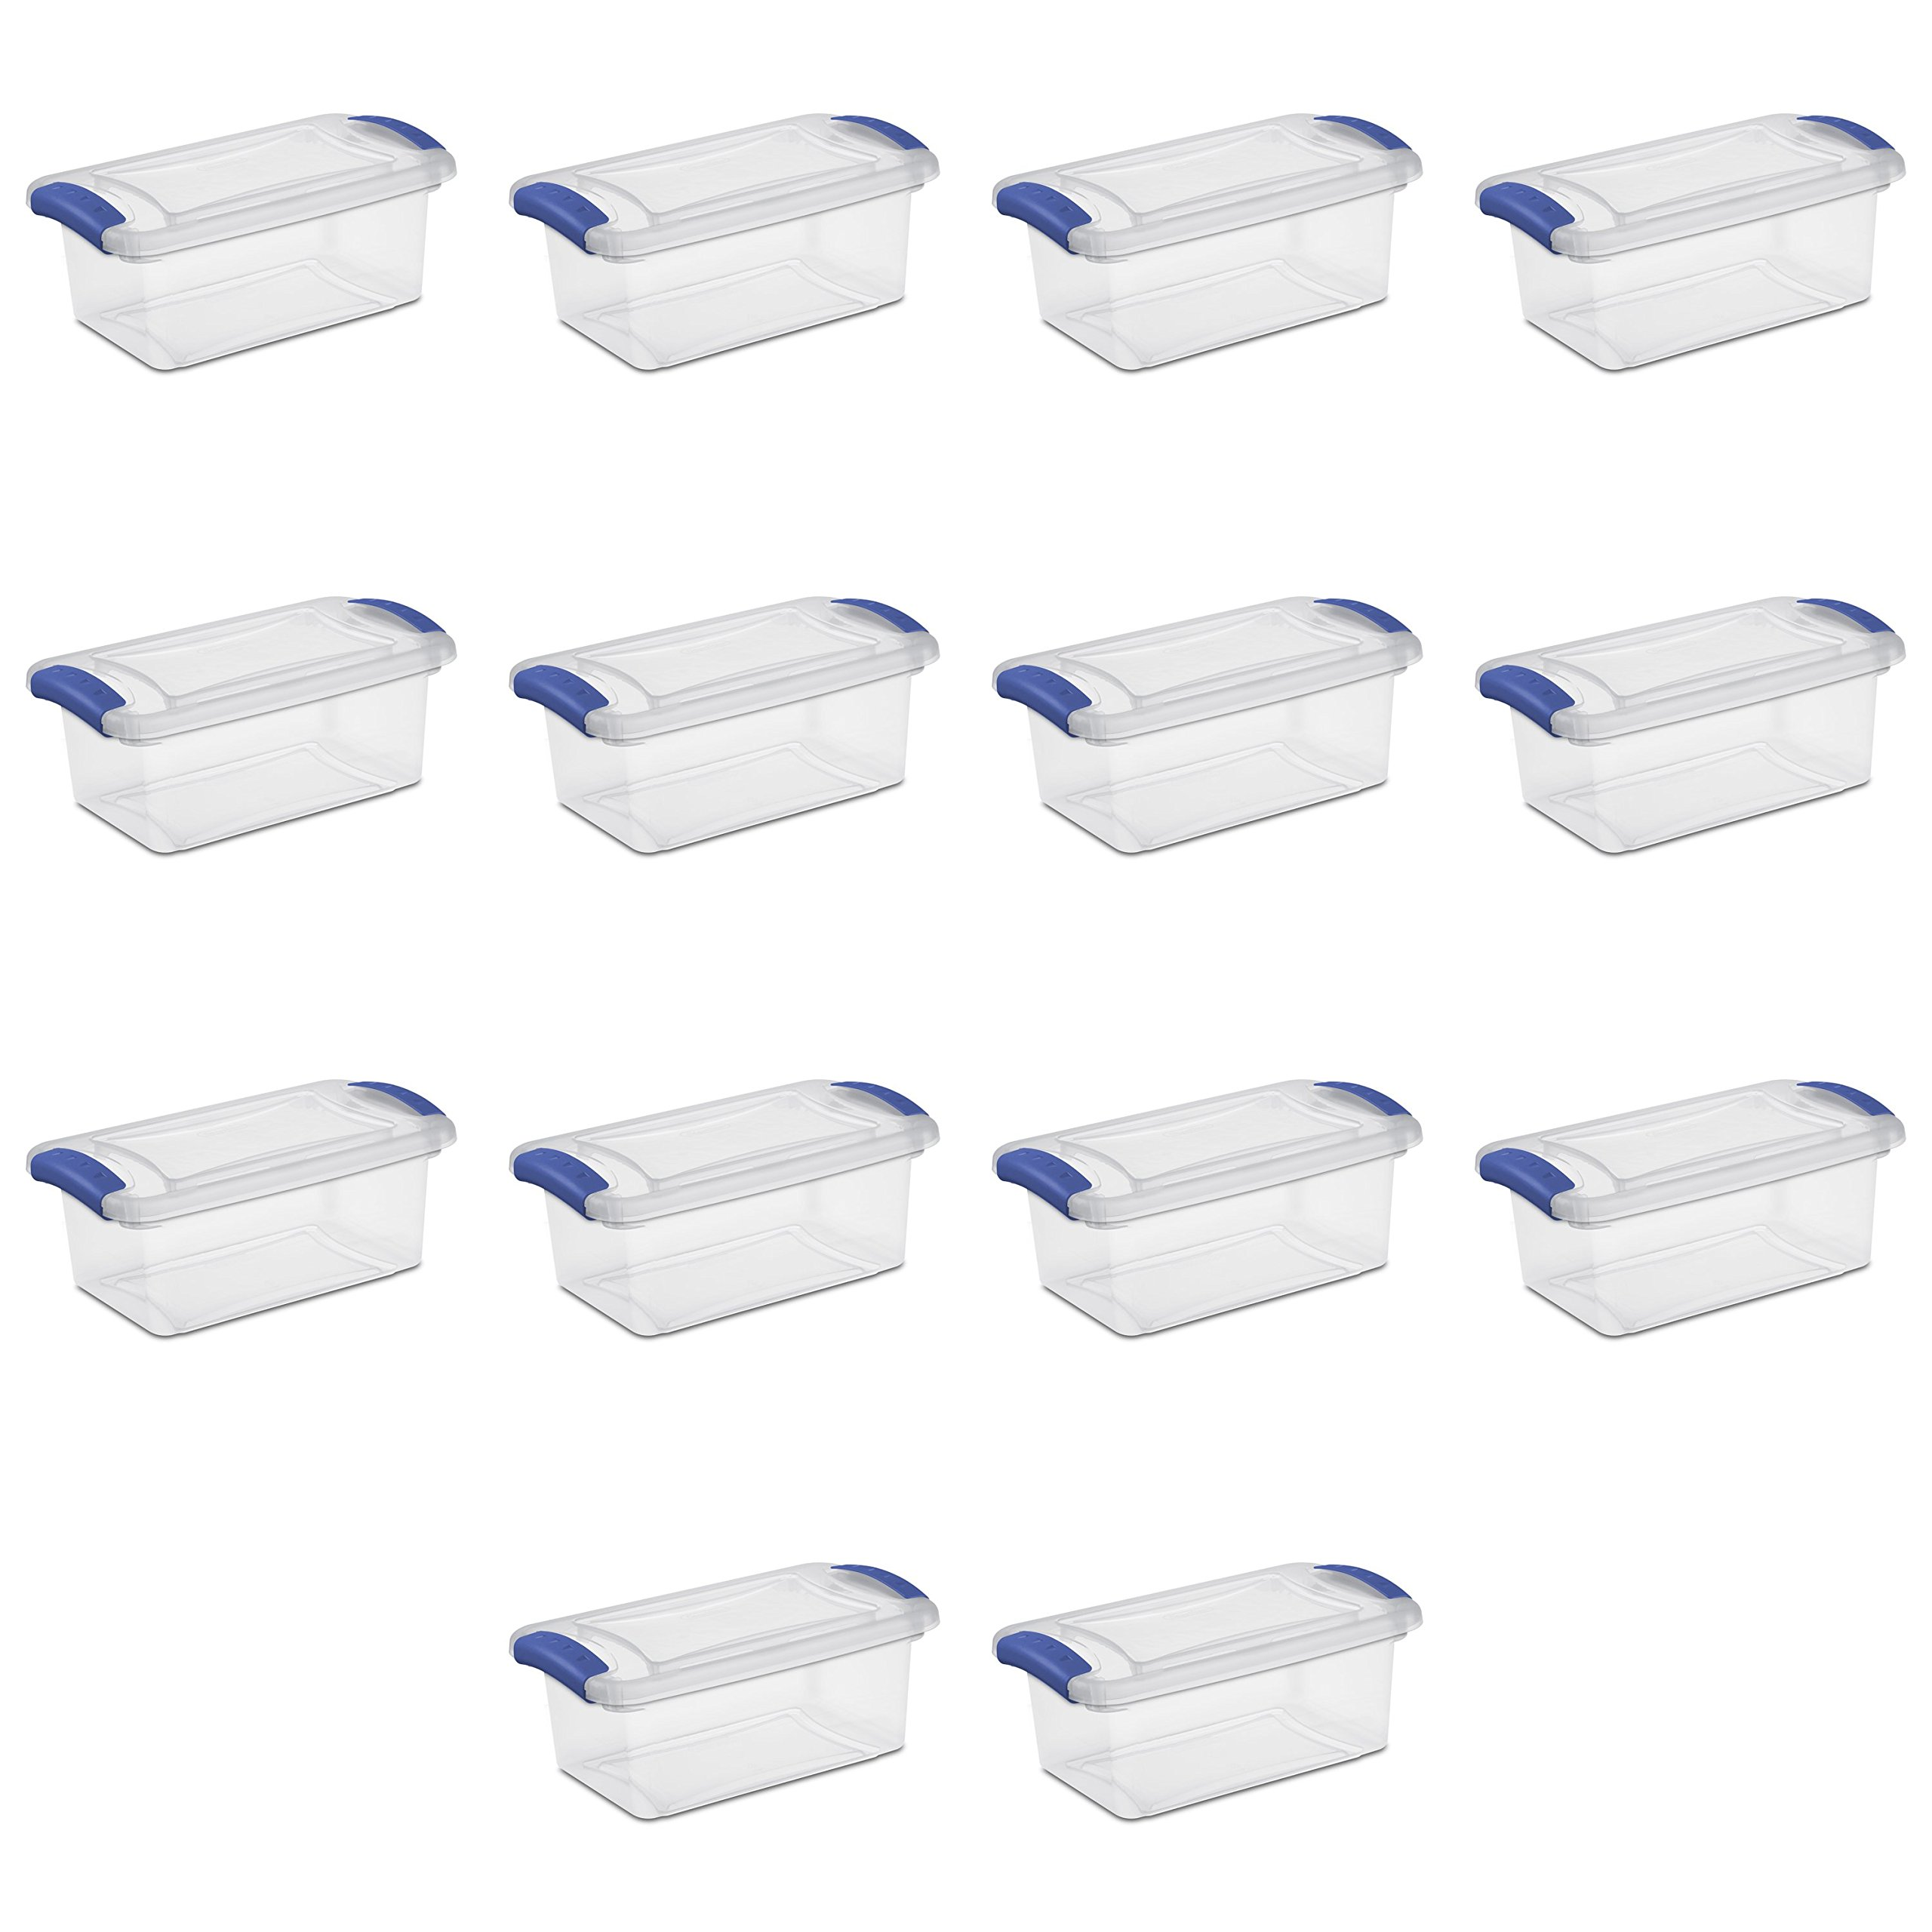 Sterilite 7 Qt Latch Box, Stadium Blue (Available in Case of 14)